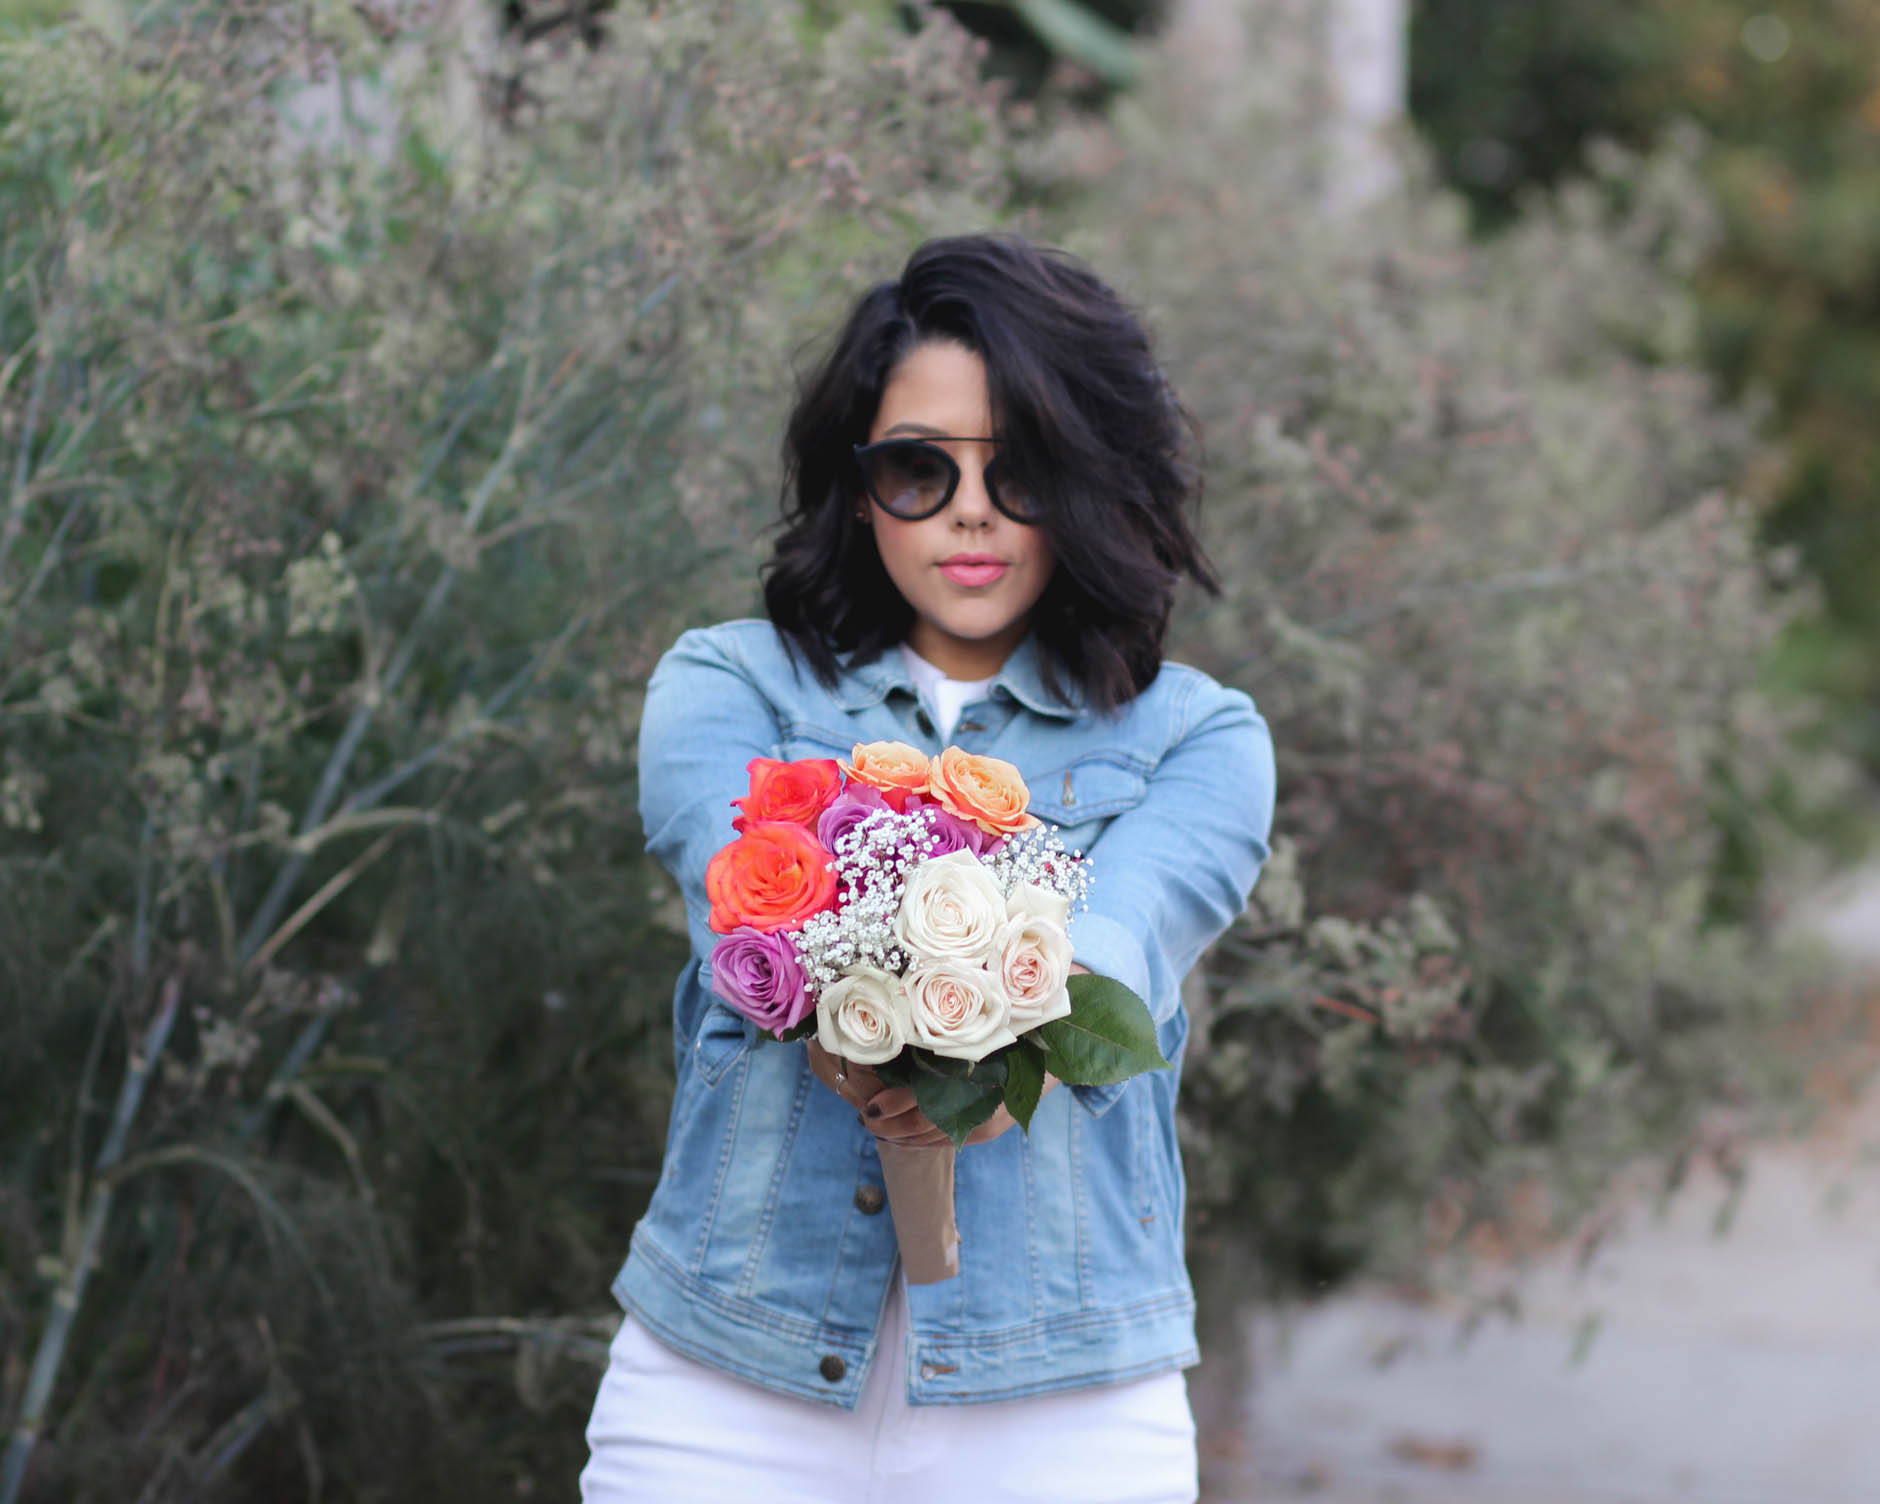 lifestyle blogger naty michele holding roses and wearing a denim jacket